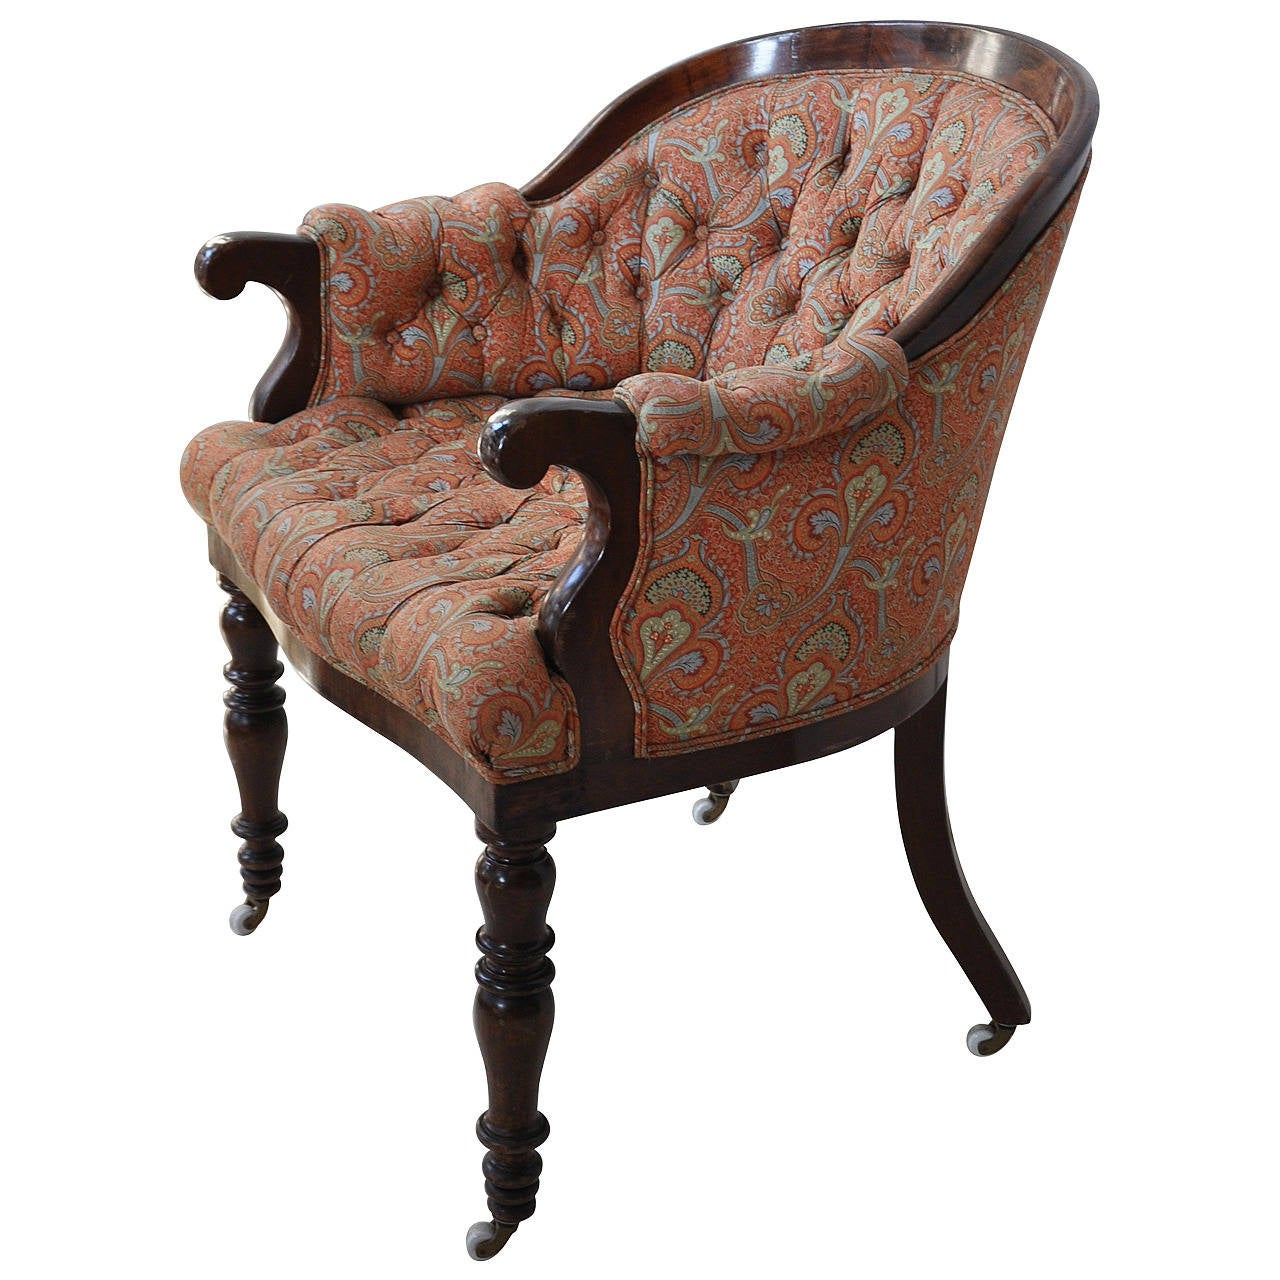 19th century tufted desk chair for sale at 1stdibs